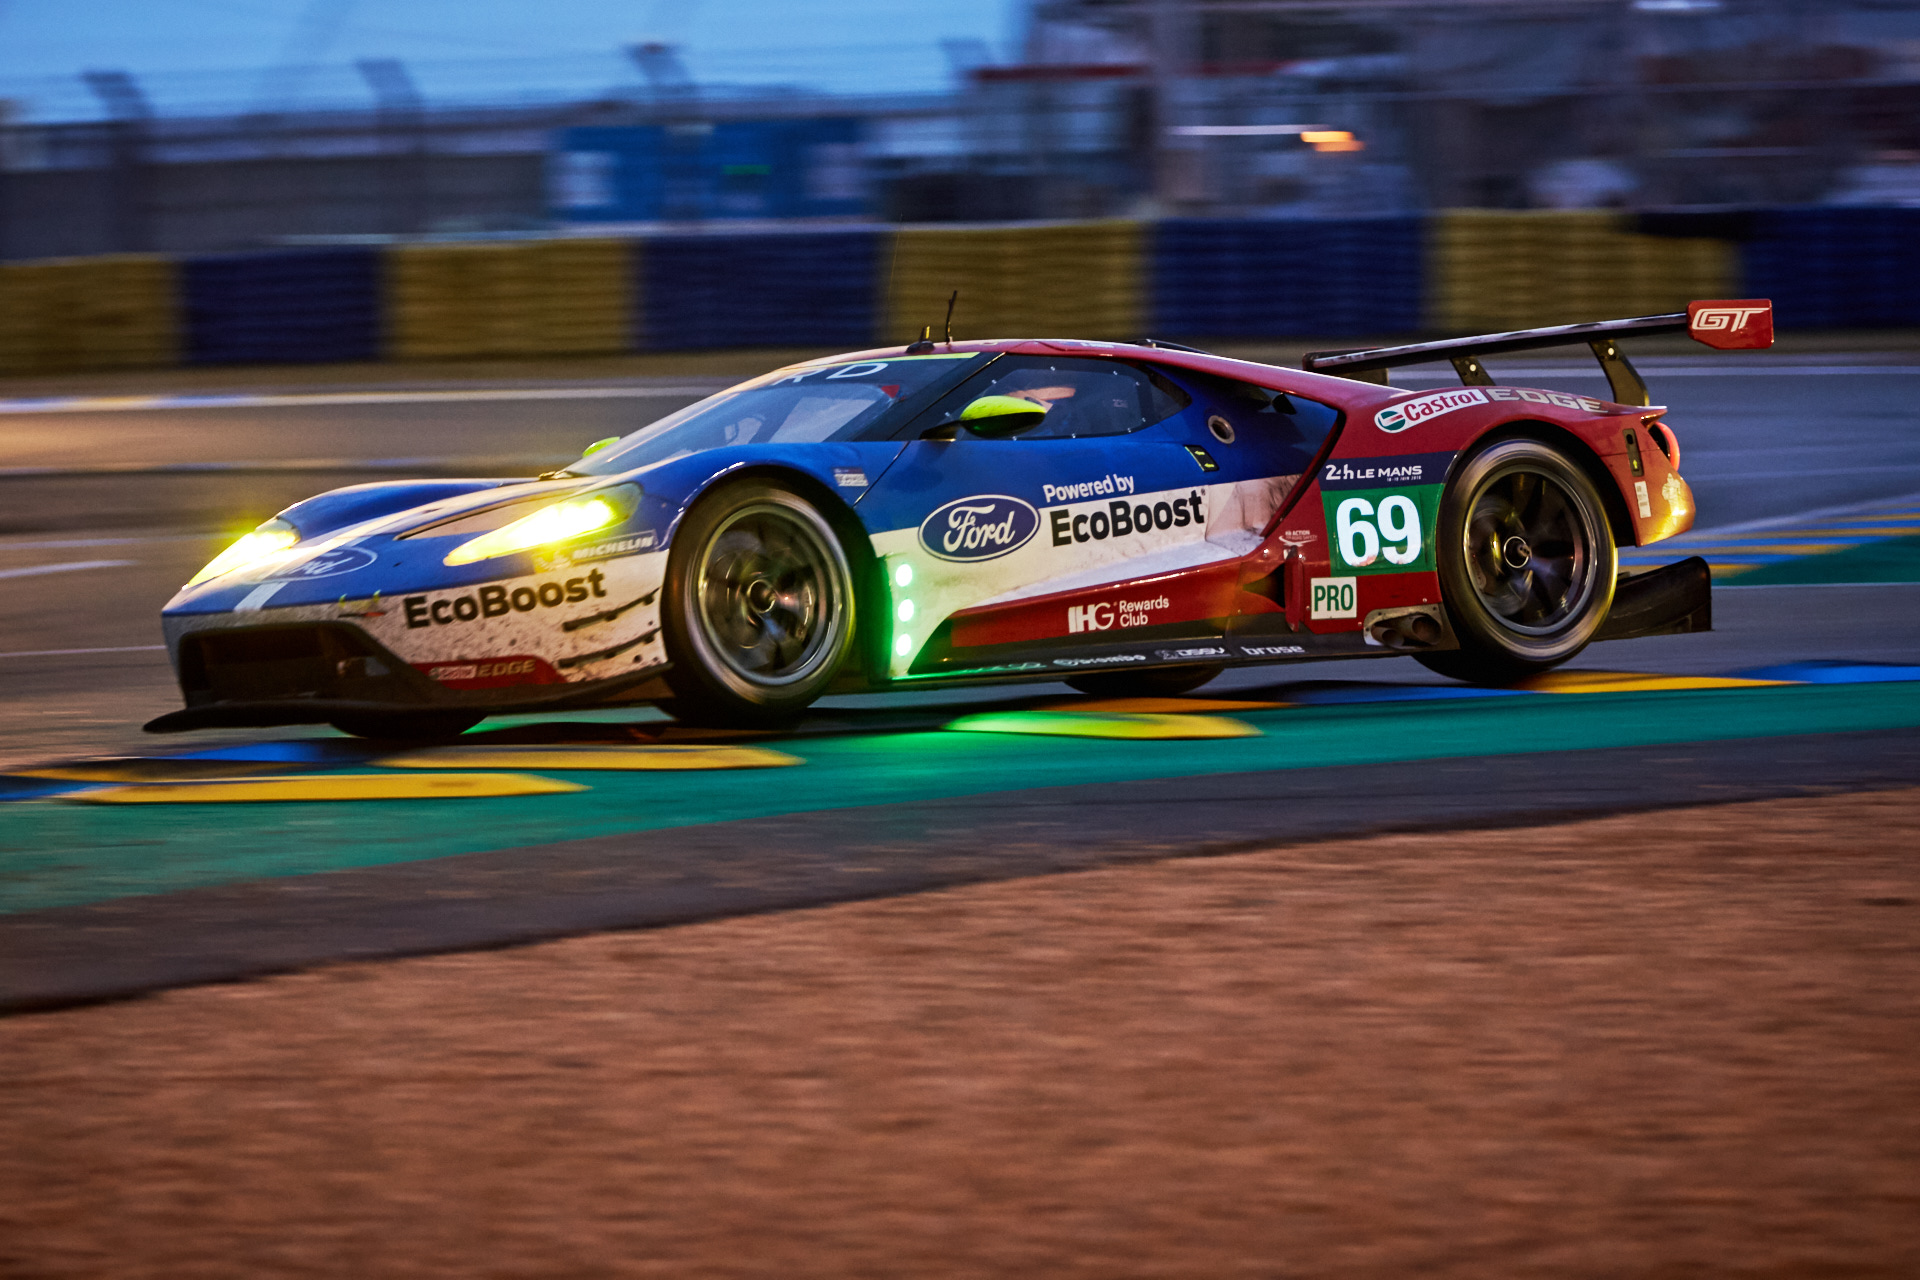 Ford GT at the Le Mans 24 hours